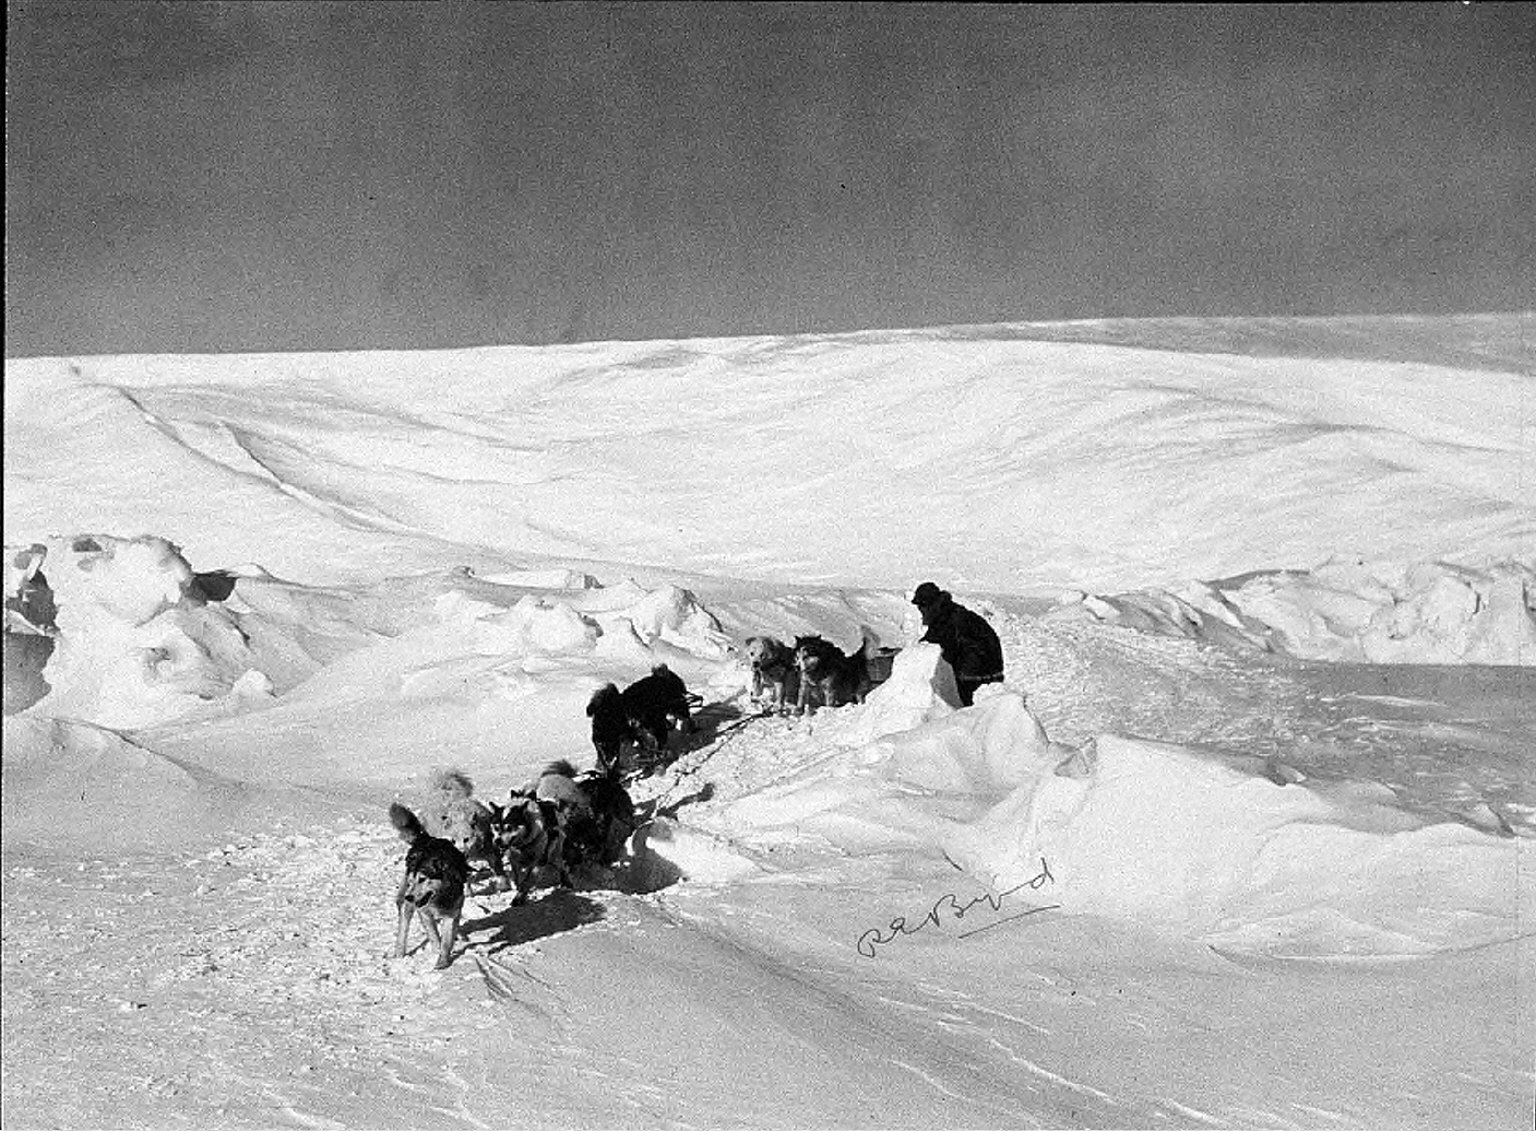 autographed view of man driving dog sled across barren winter landscape